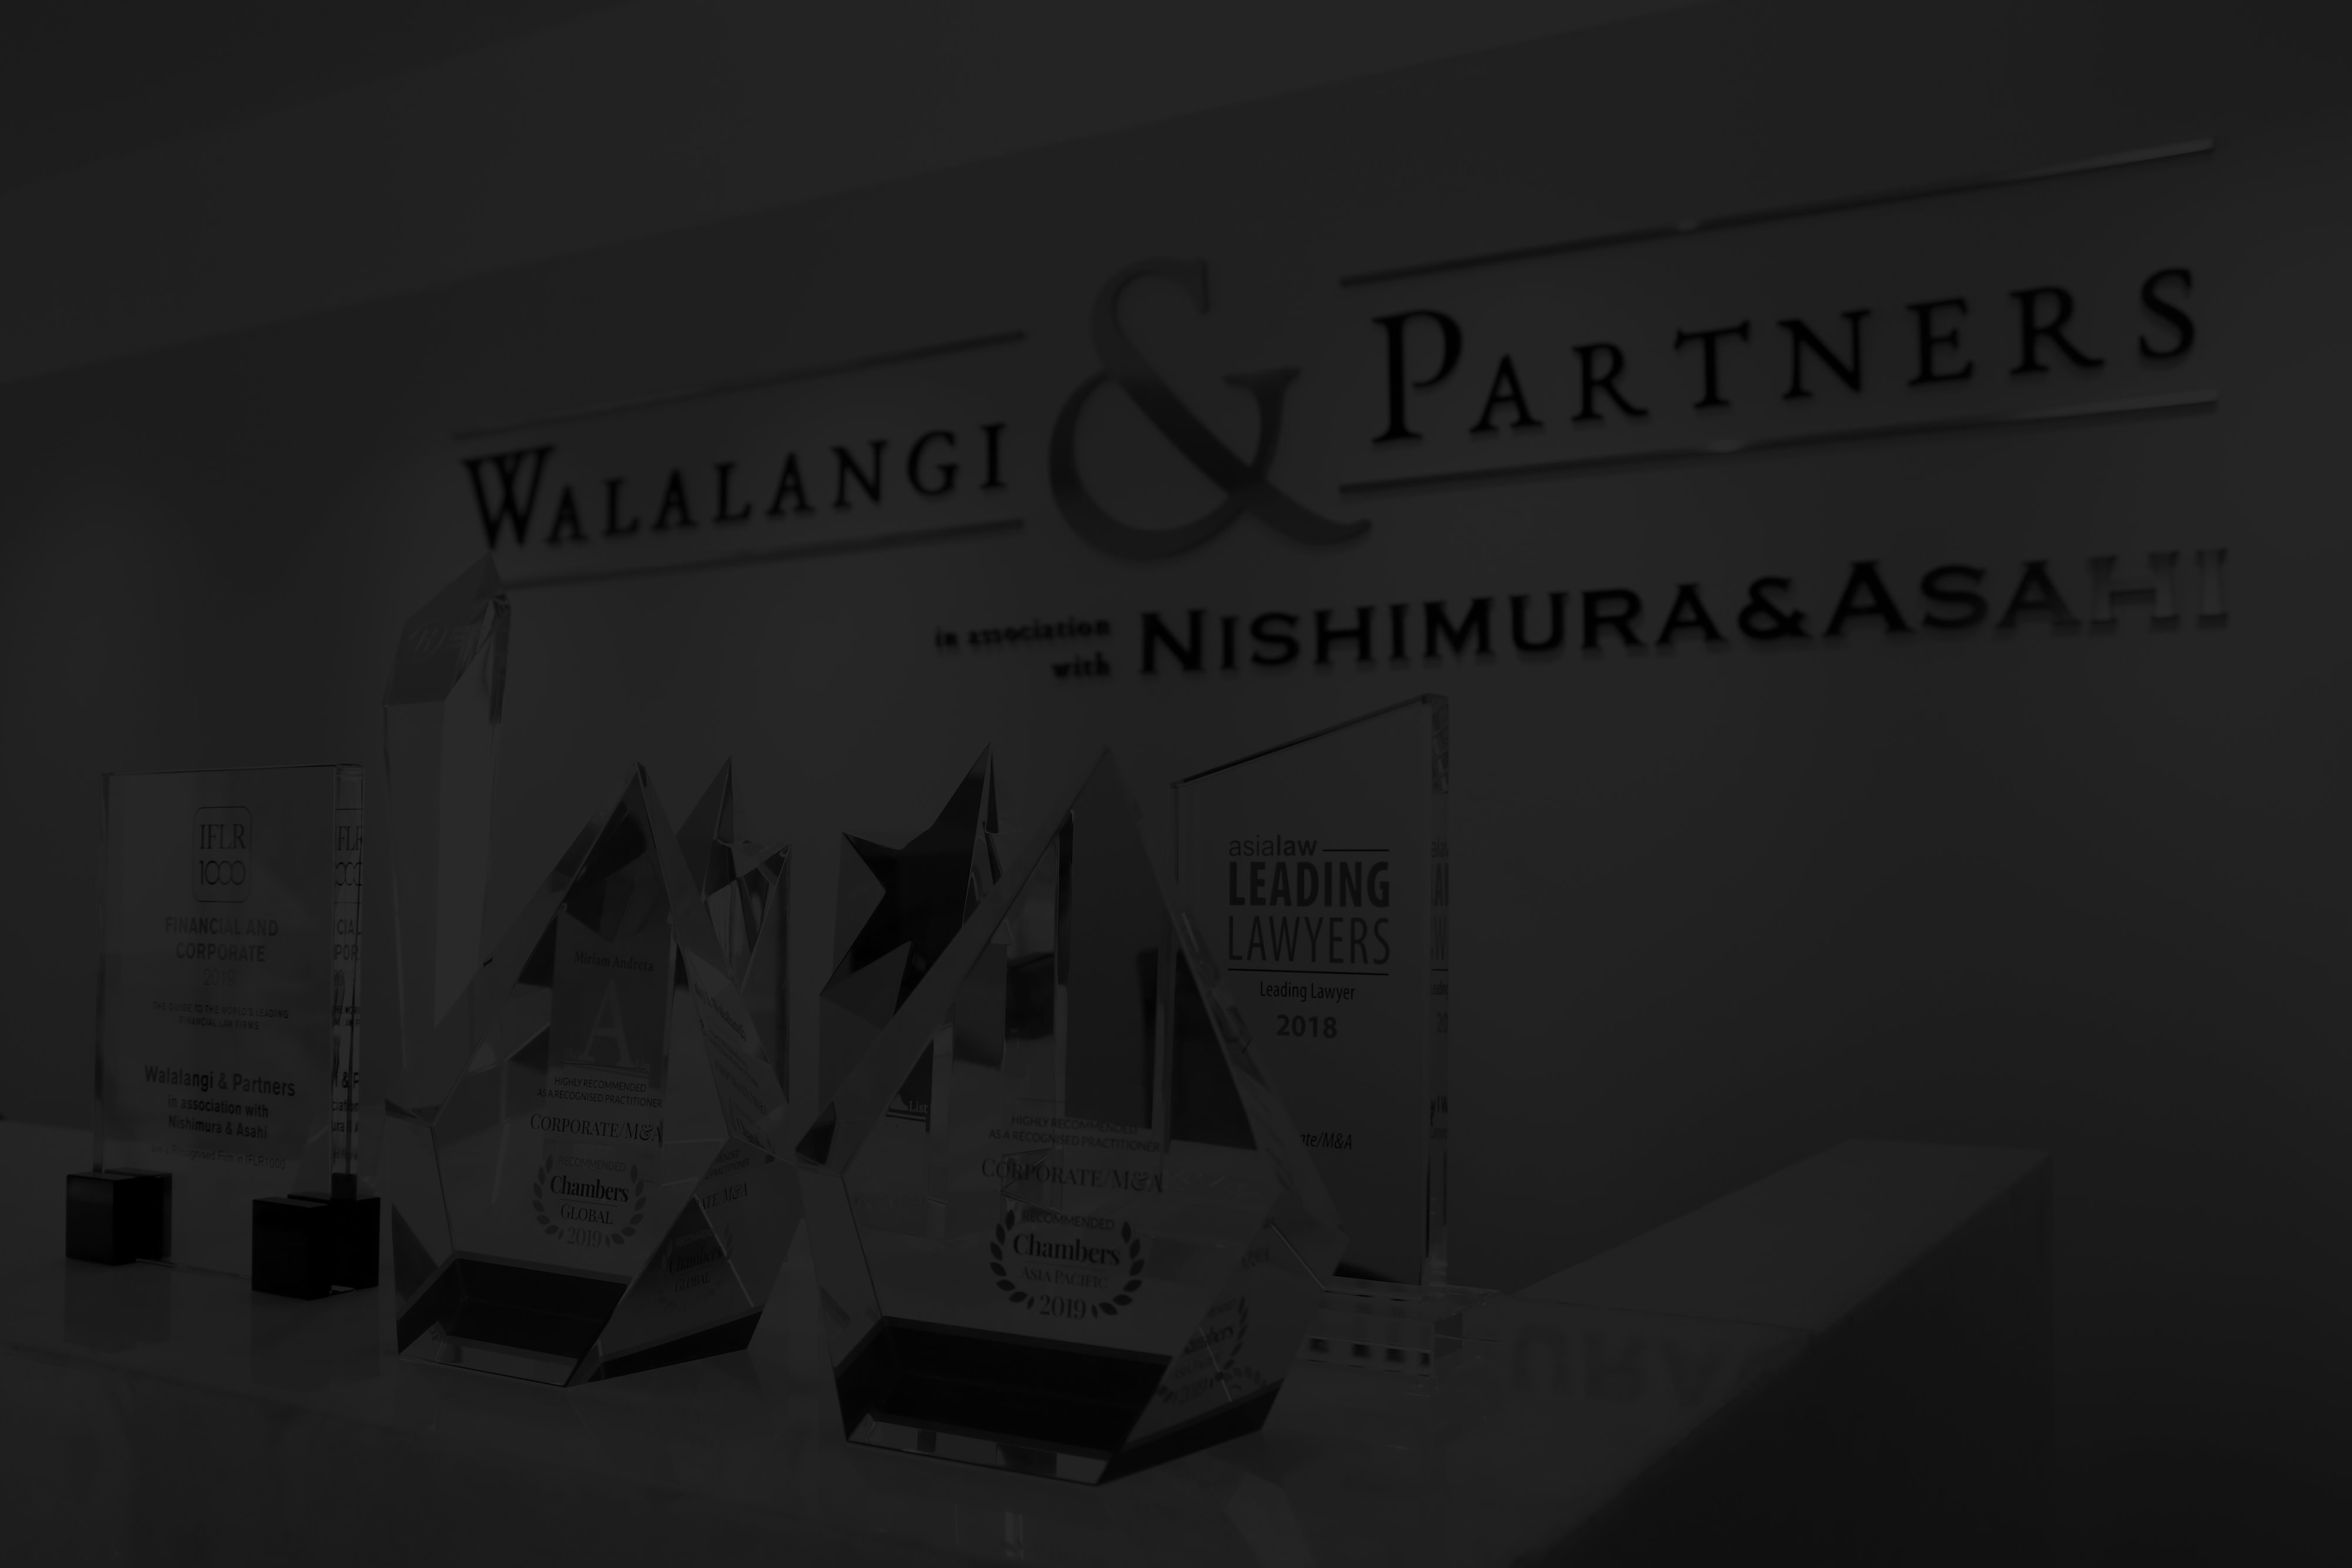 Walalangi & Partners | Merger & Acquisition, Banking